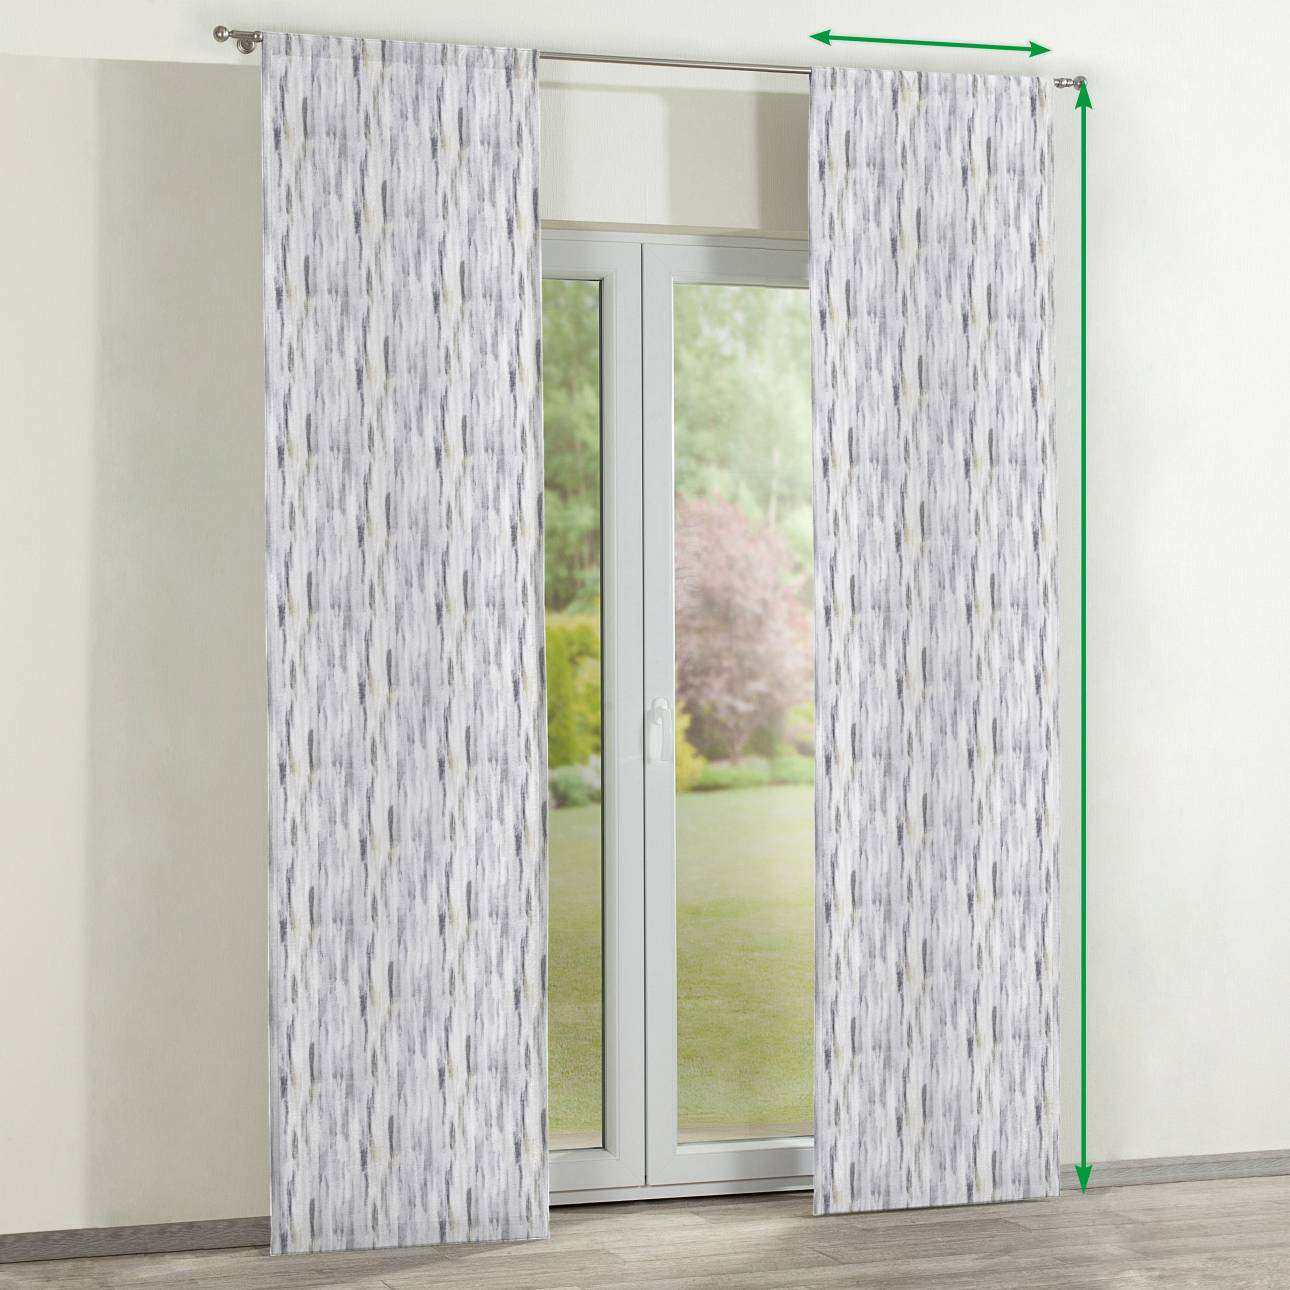 Slot panel curtains – Set of 2 in collection Aquarelle, fabric: 140-66